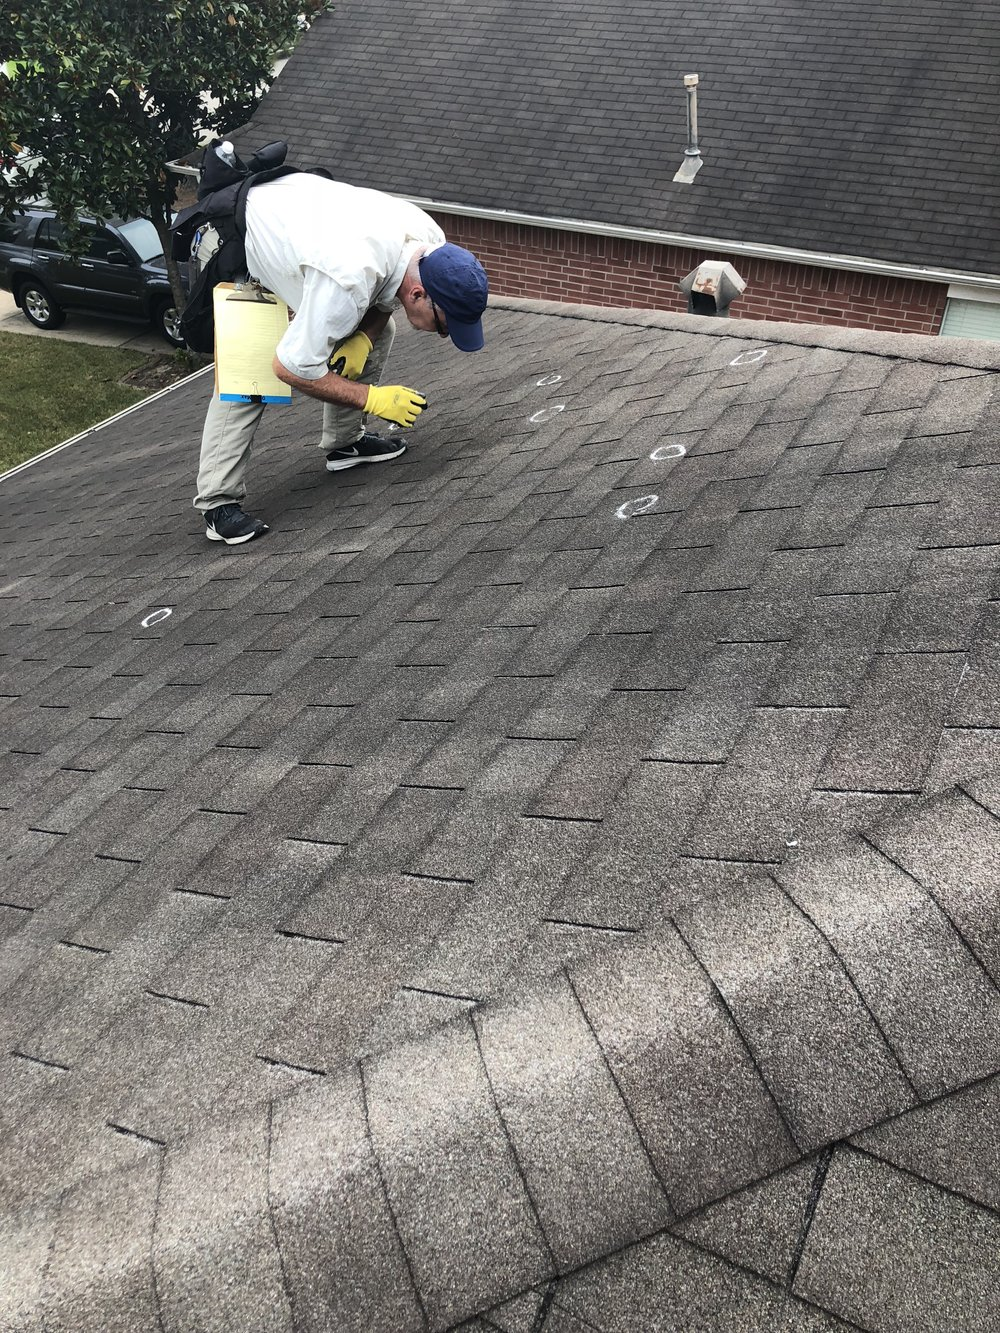 Our Team actively on a roof with an insurance adjuster assisting with a full roof replacement for hail damage..